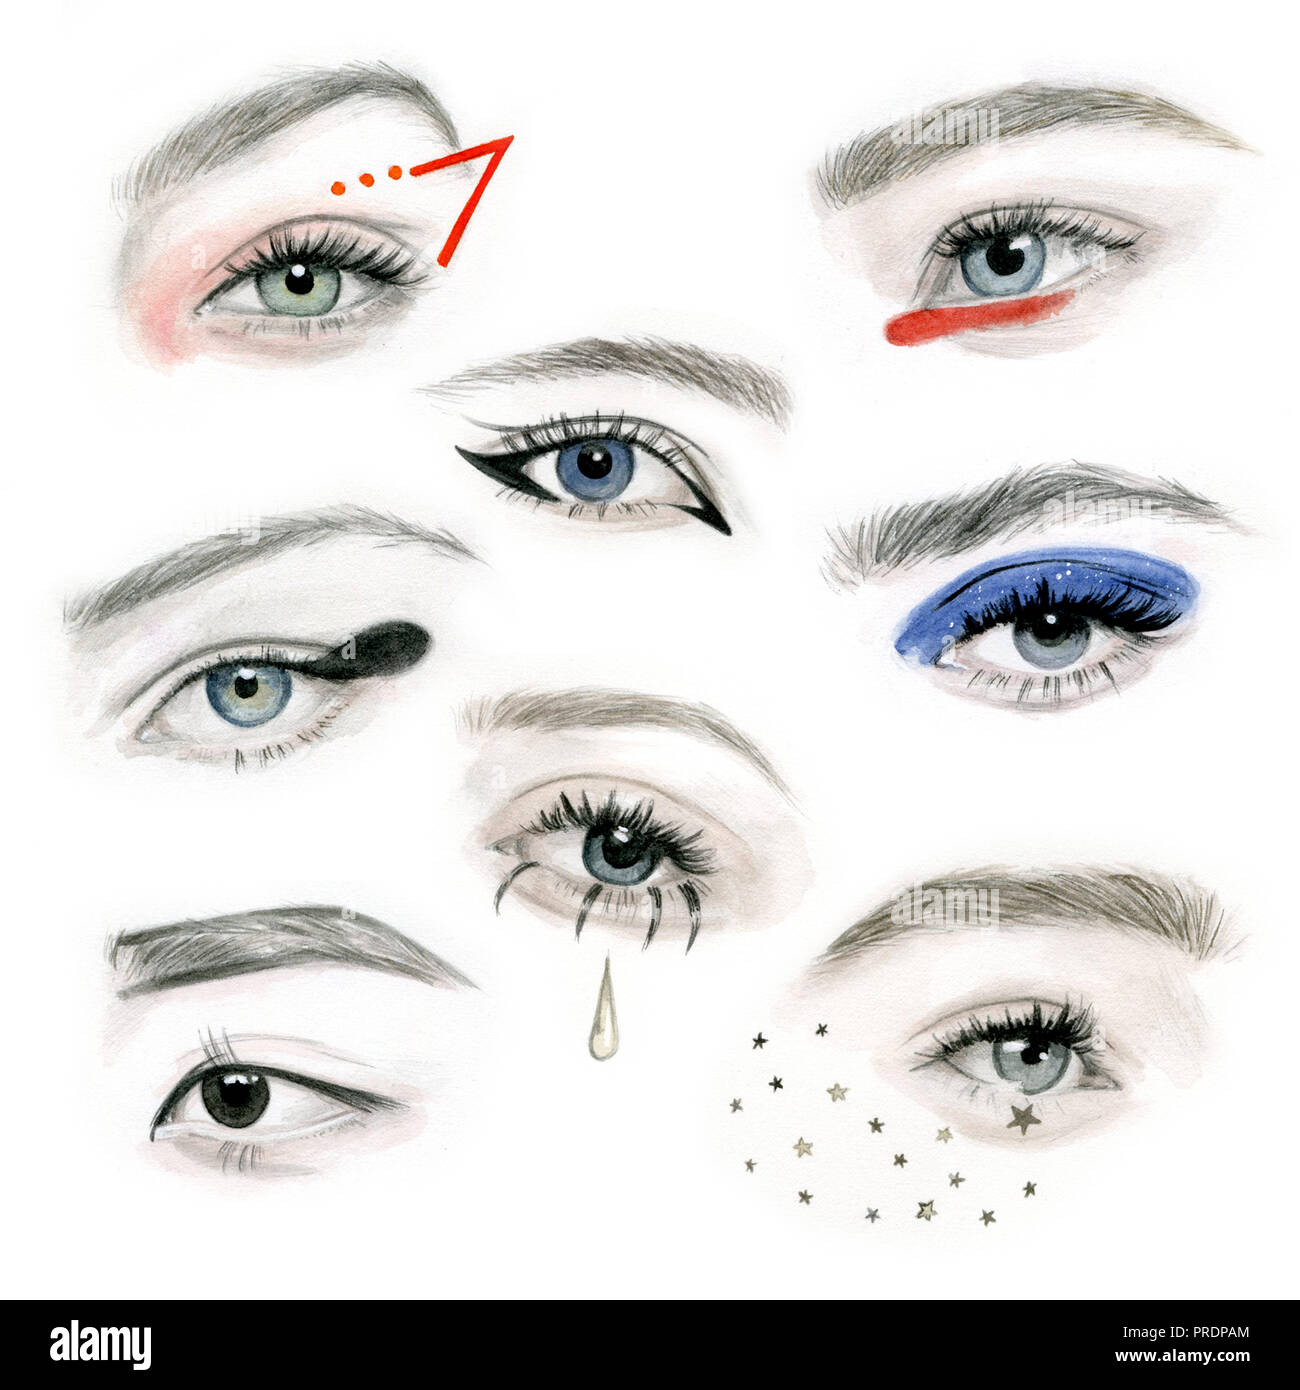 Different eye make-ups - Stock Image